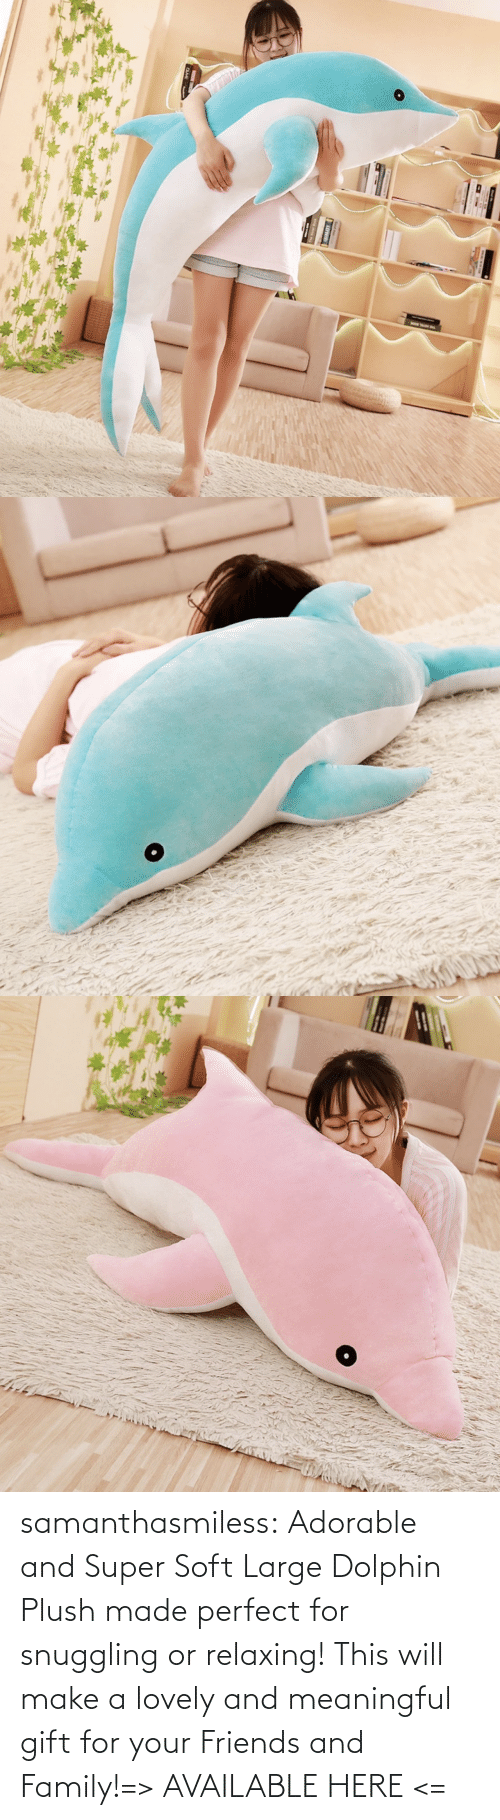 Dolphin: samanthasmiless:  Adorable and Super Soft Large Dolphin Plush made perfect for snuggling or relaxing! This will make a lovely and meaningful gift for your Friends and Family!=> AVAILABLE HERE <=